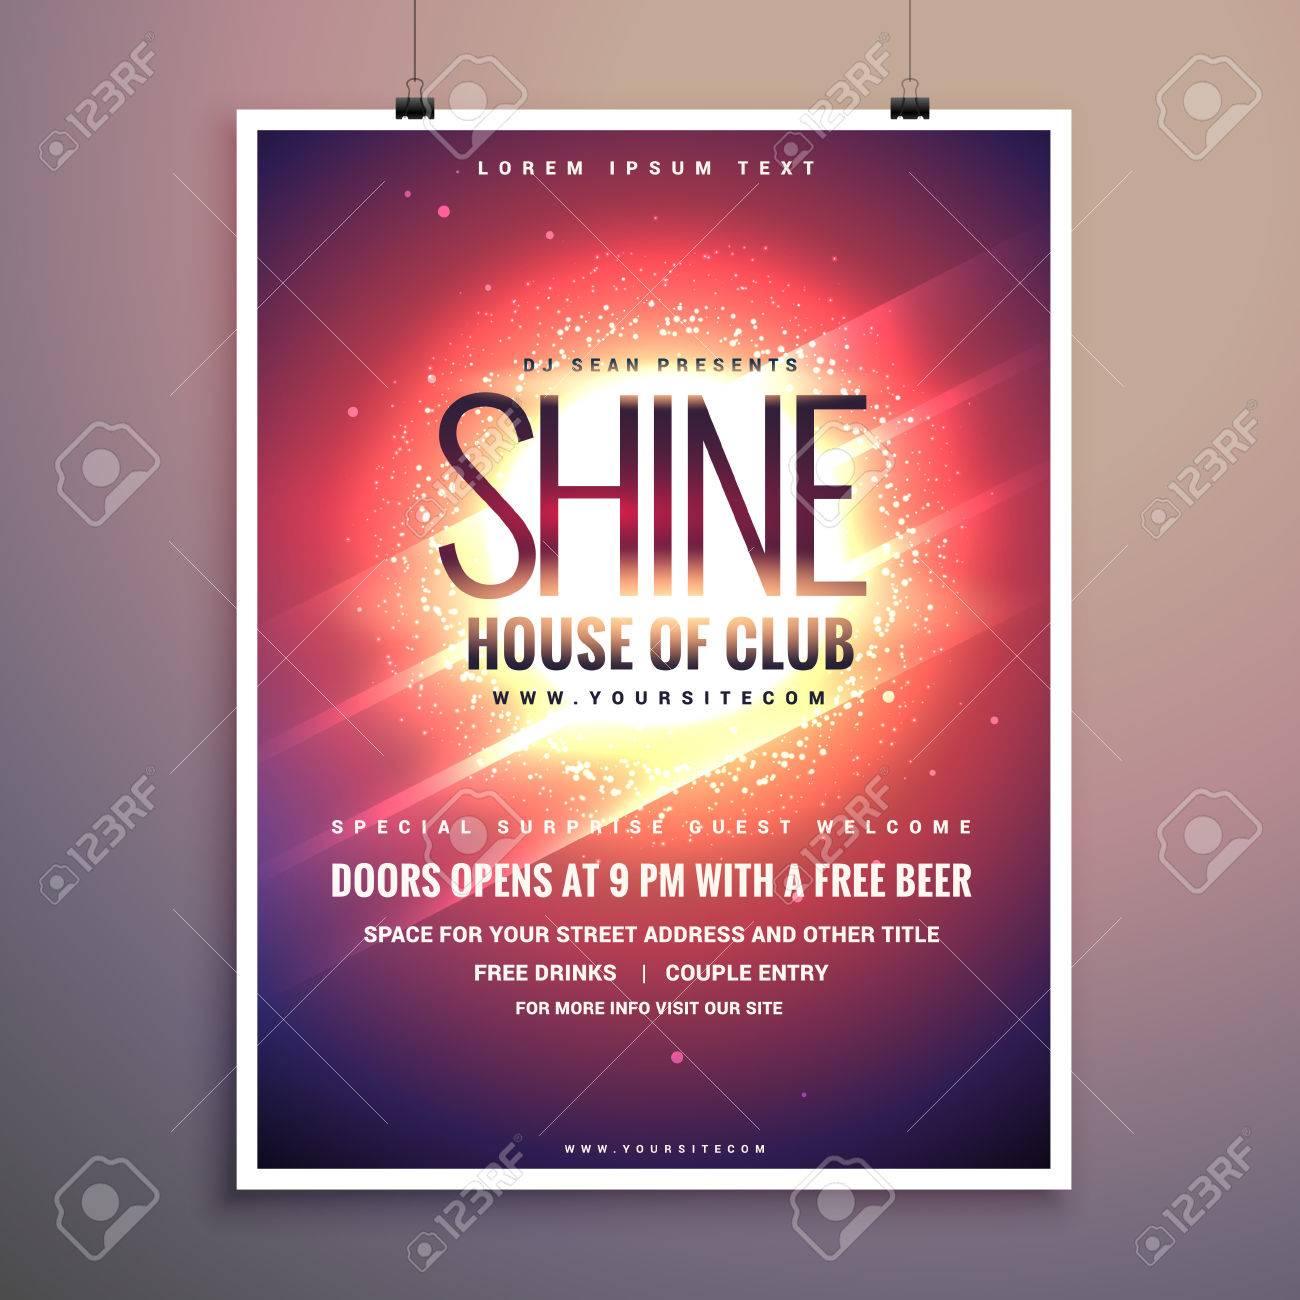 shine club music party flyer template with glowing background - 66227654